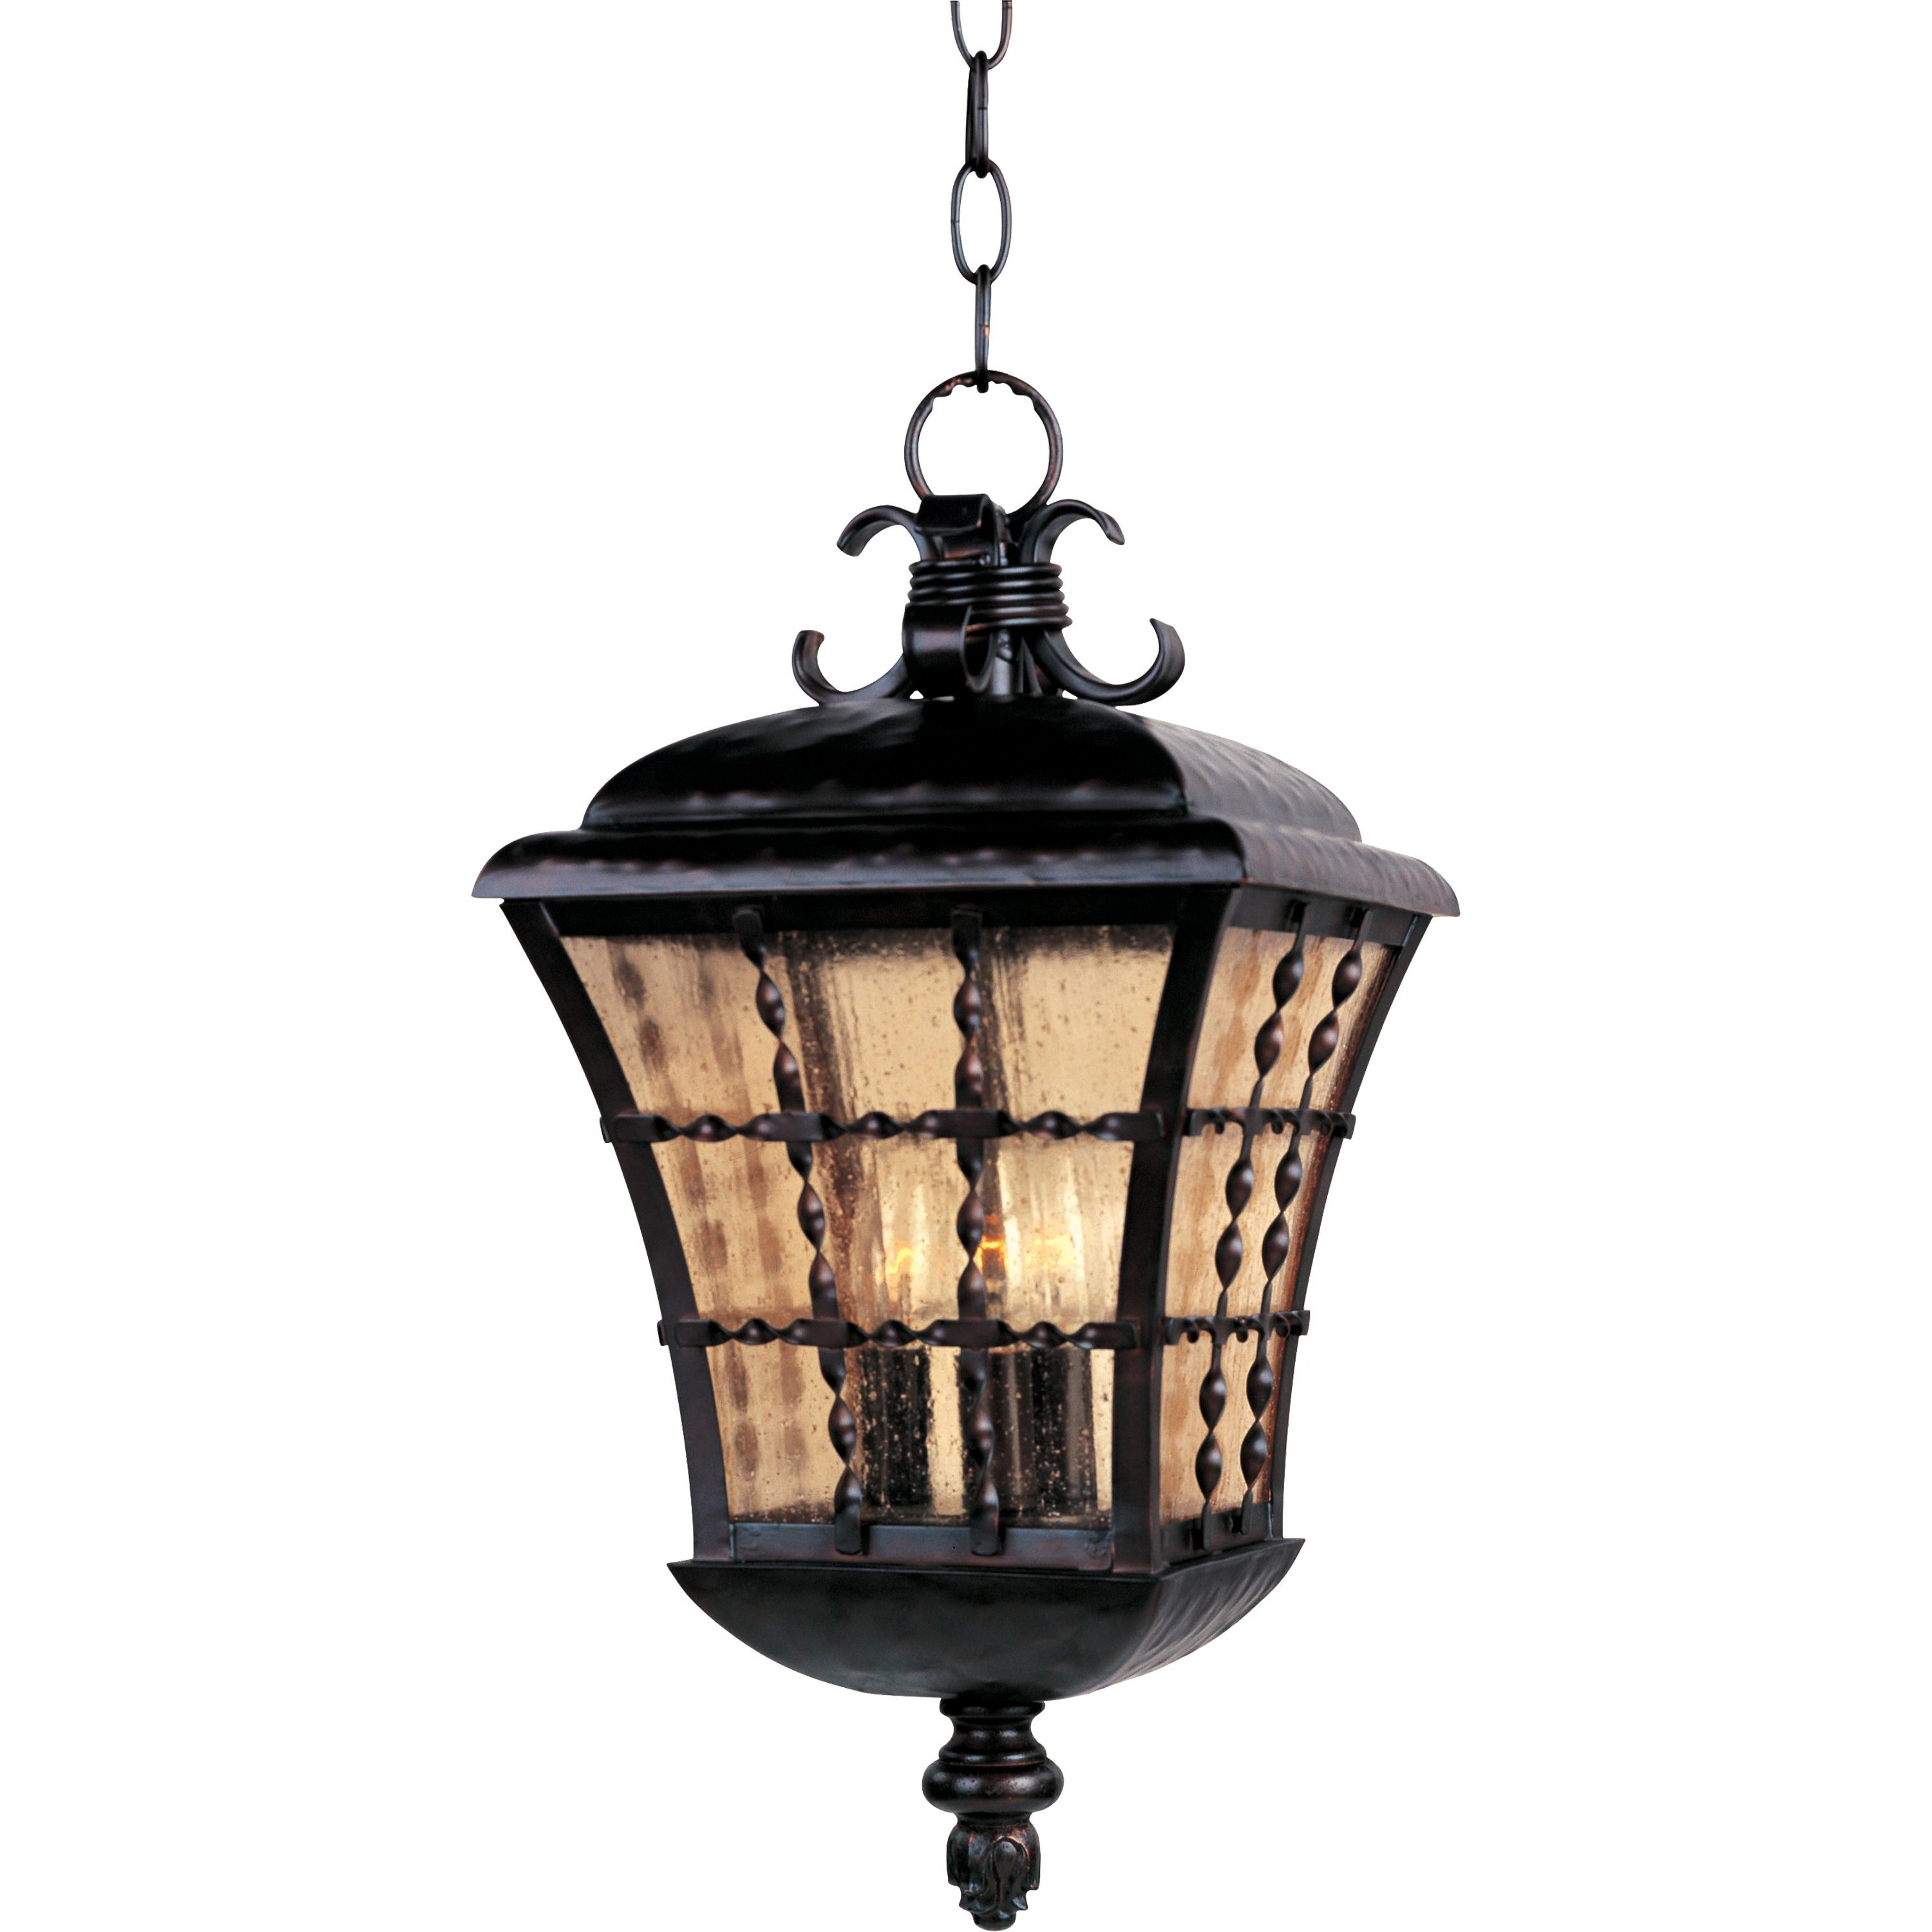 Various Screw In Pendant Light Fixture To Style The